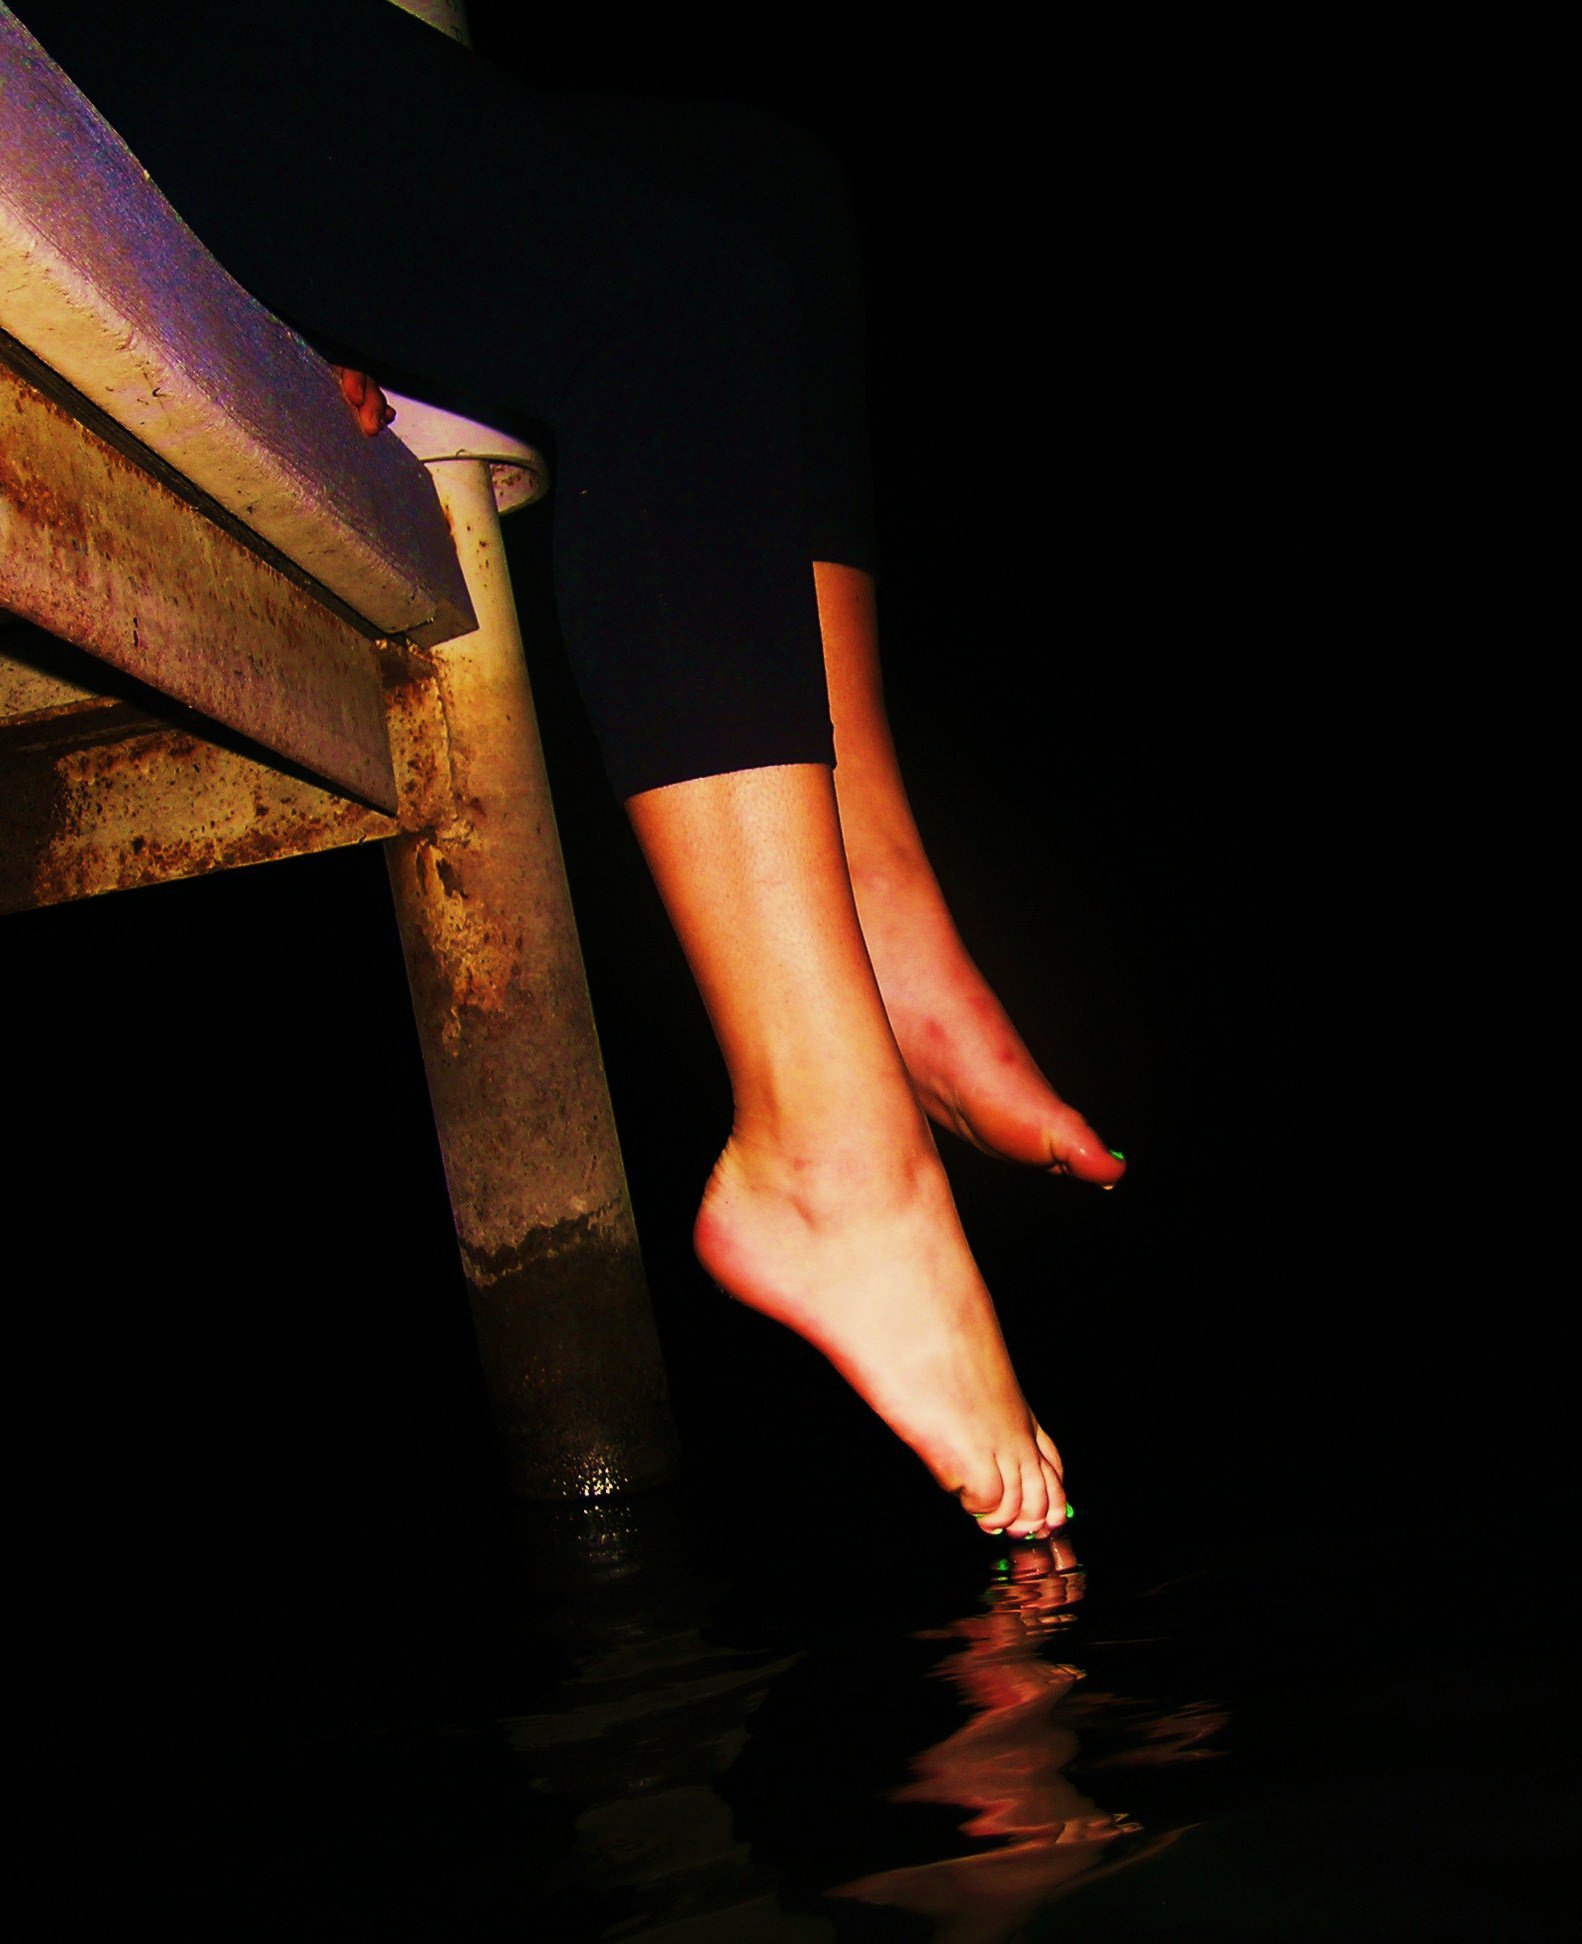 Feet off dock